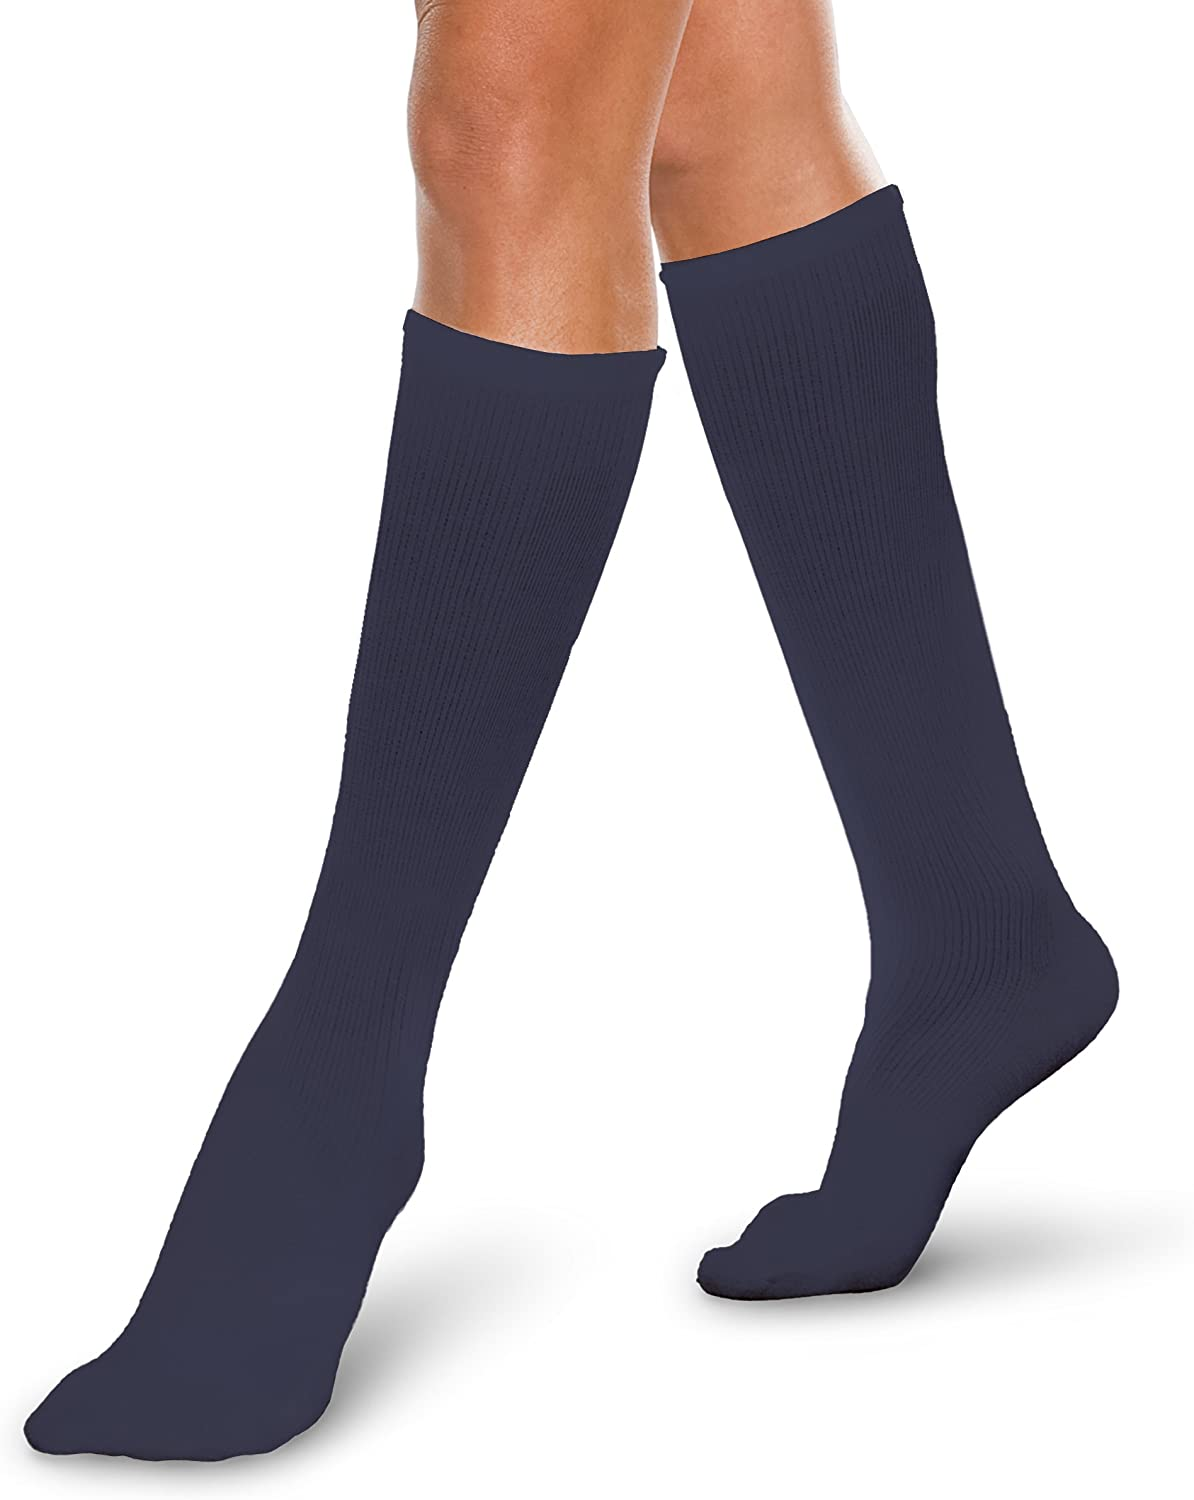 Core-Spun 20-30mmHg Moderate Graduated Compression Support Knee High Socks (Navy, Small Short)